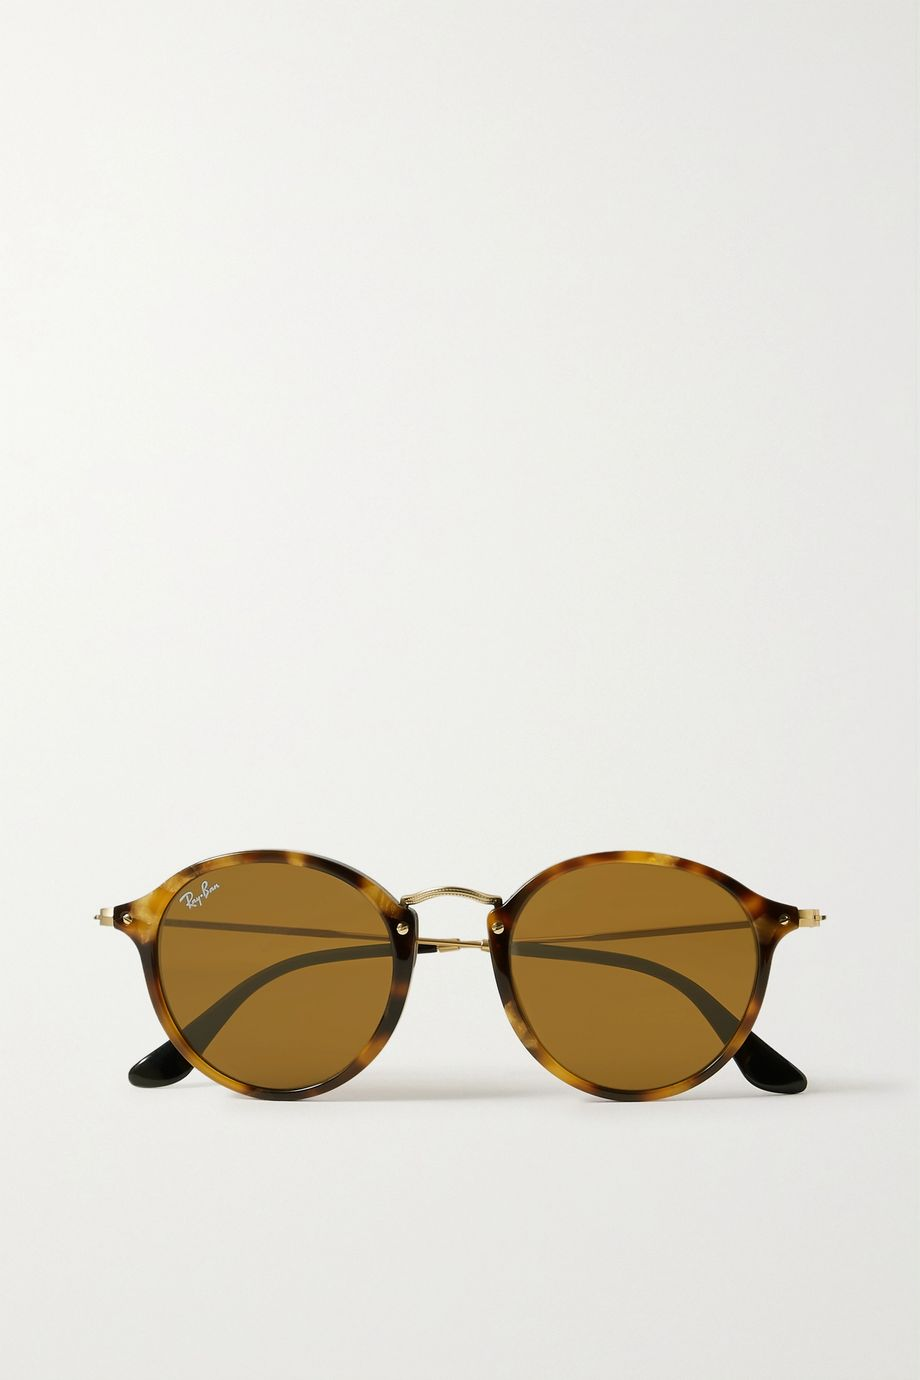 Ray-Ban Round-frame tortoiseshell acetate and gold-tone sunglasses